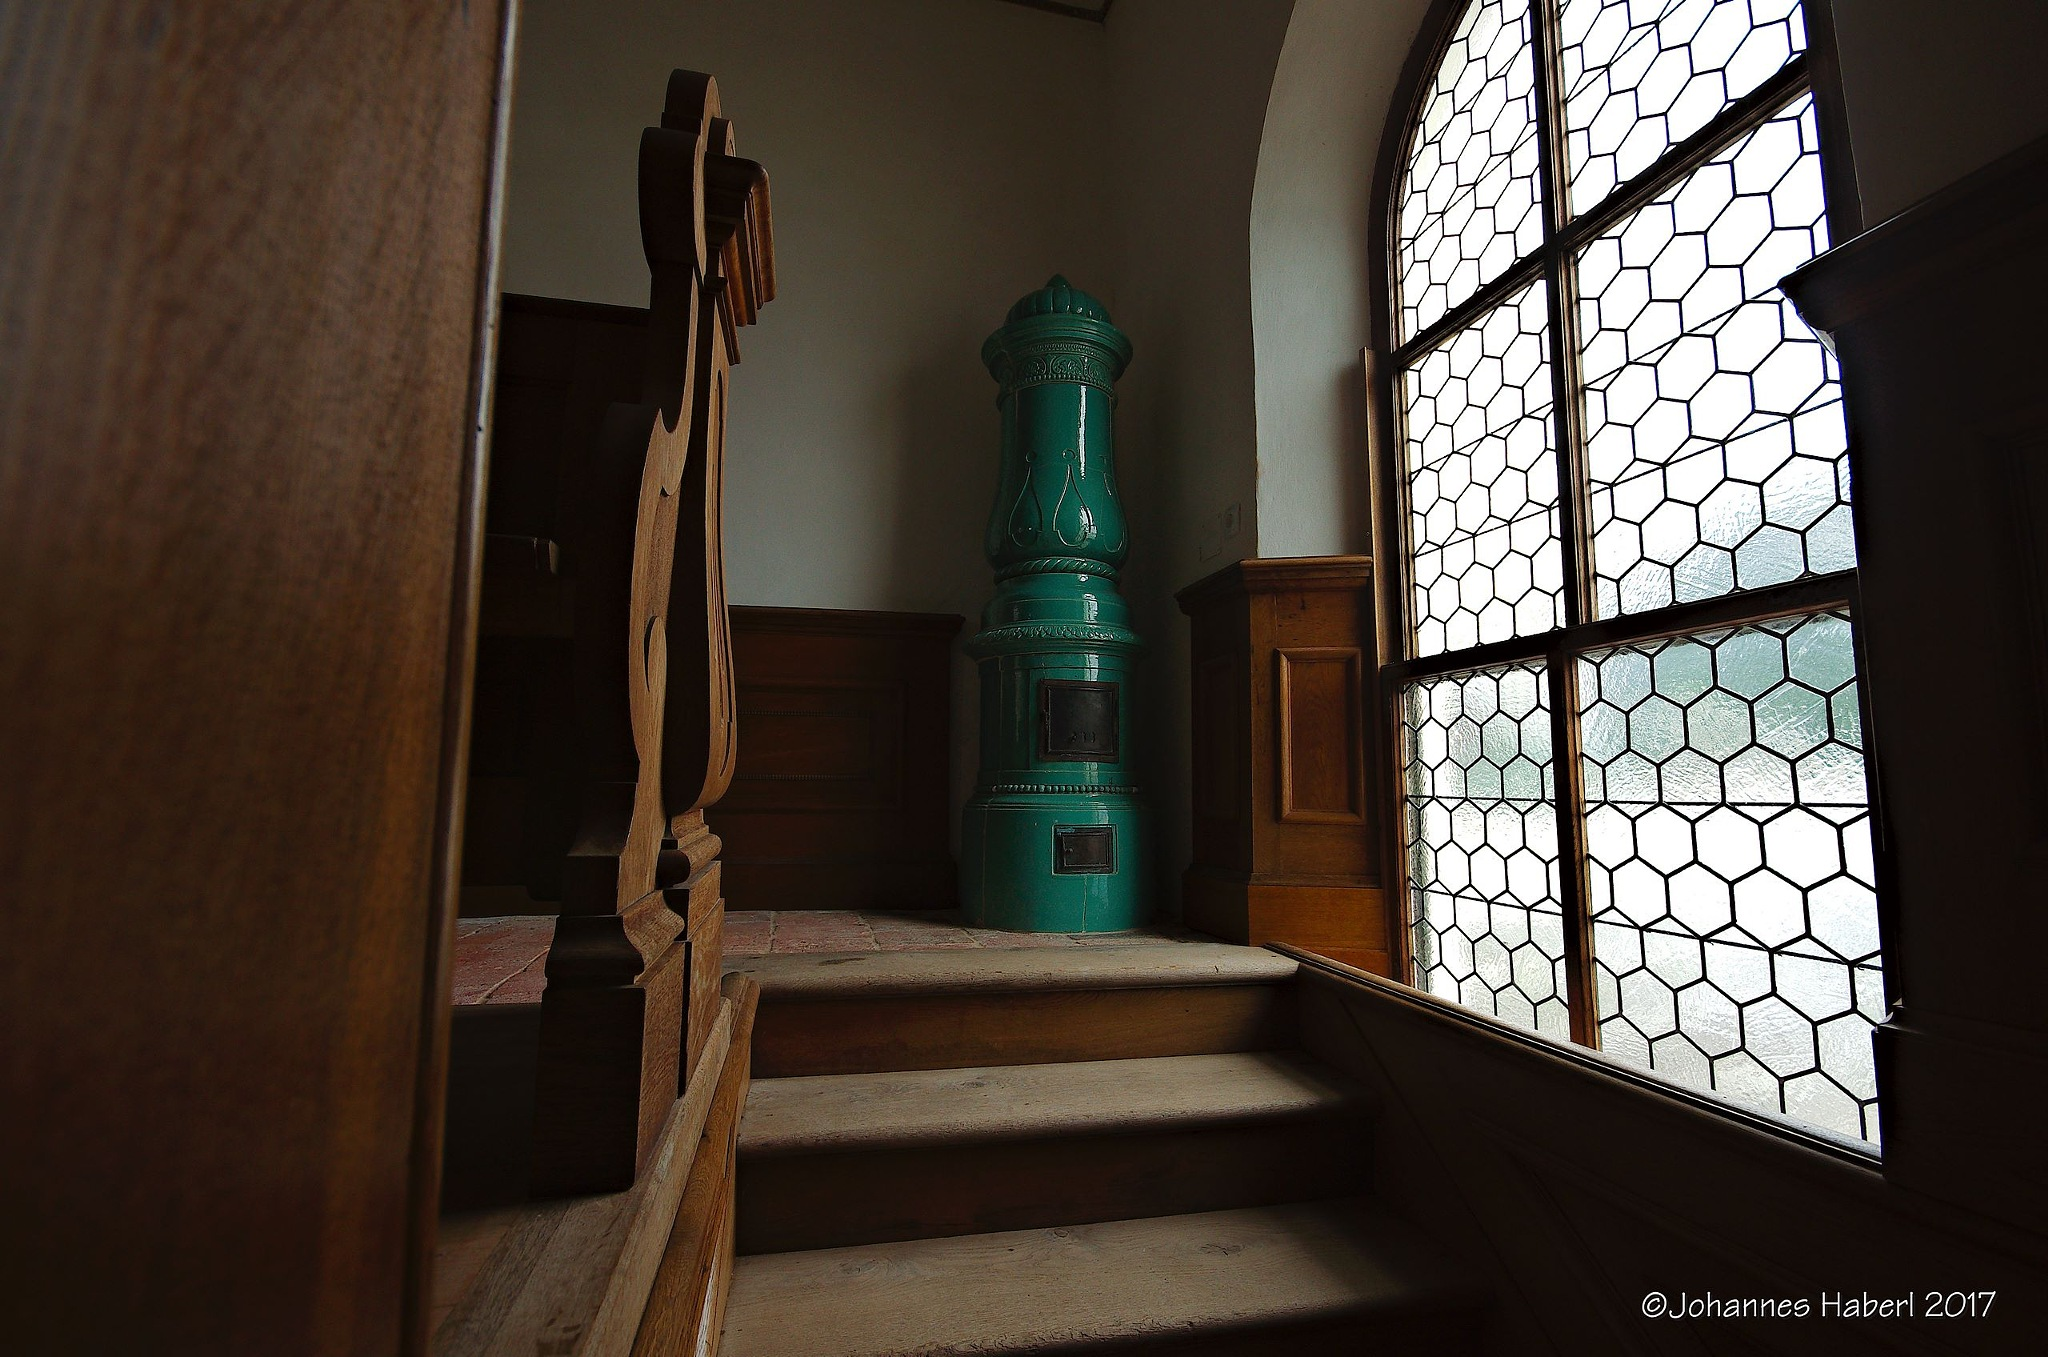 tiled stove - chapel - castle Trautenfels by Johannes Haberl